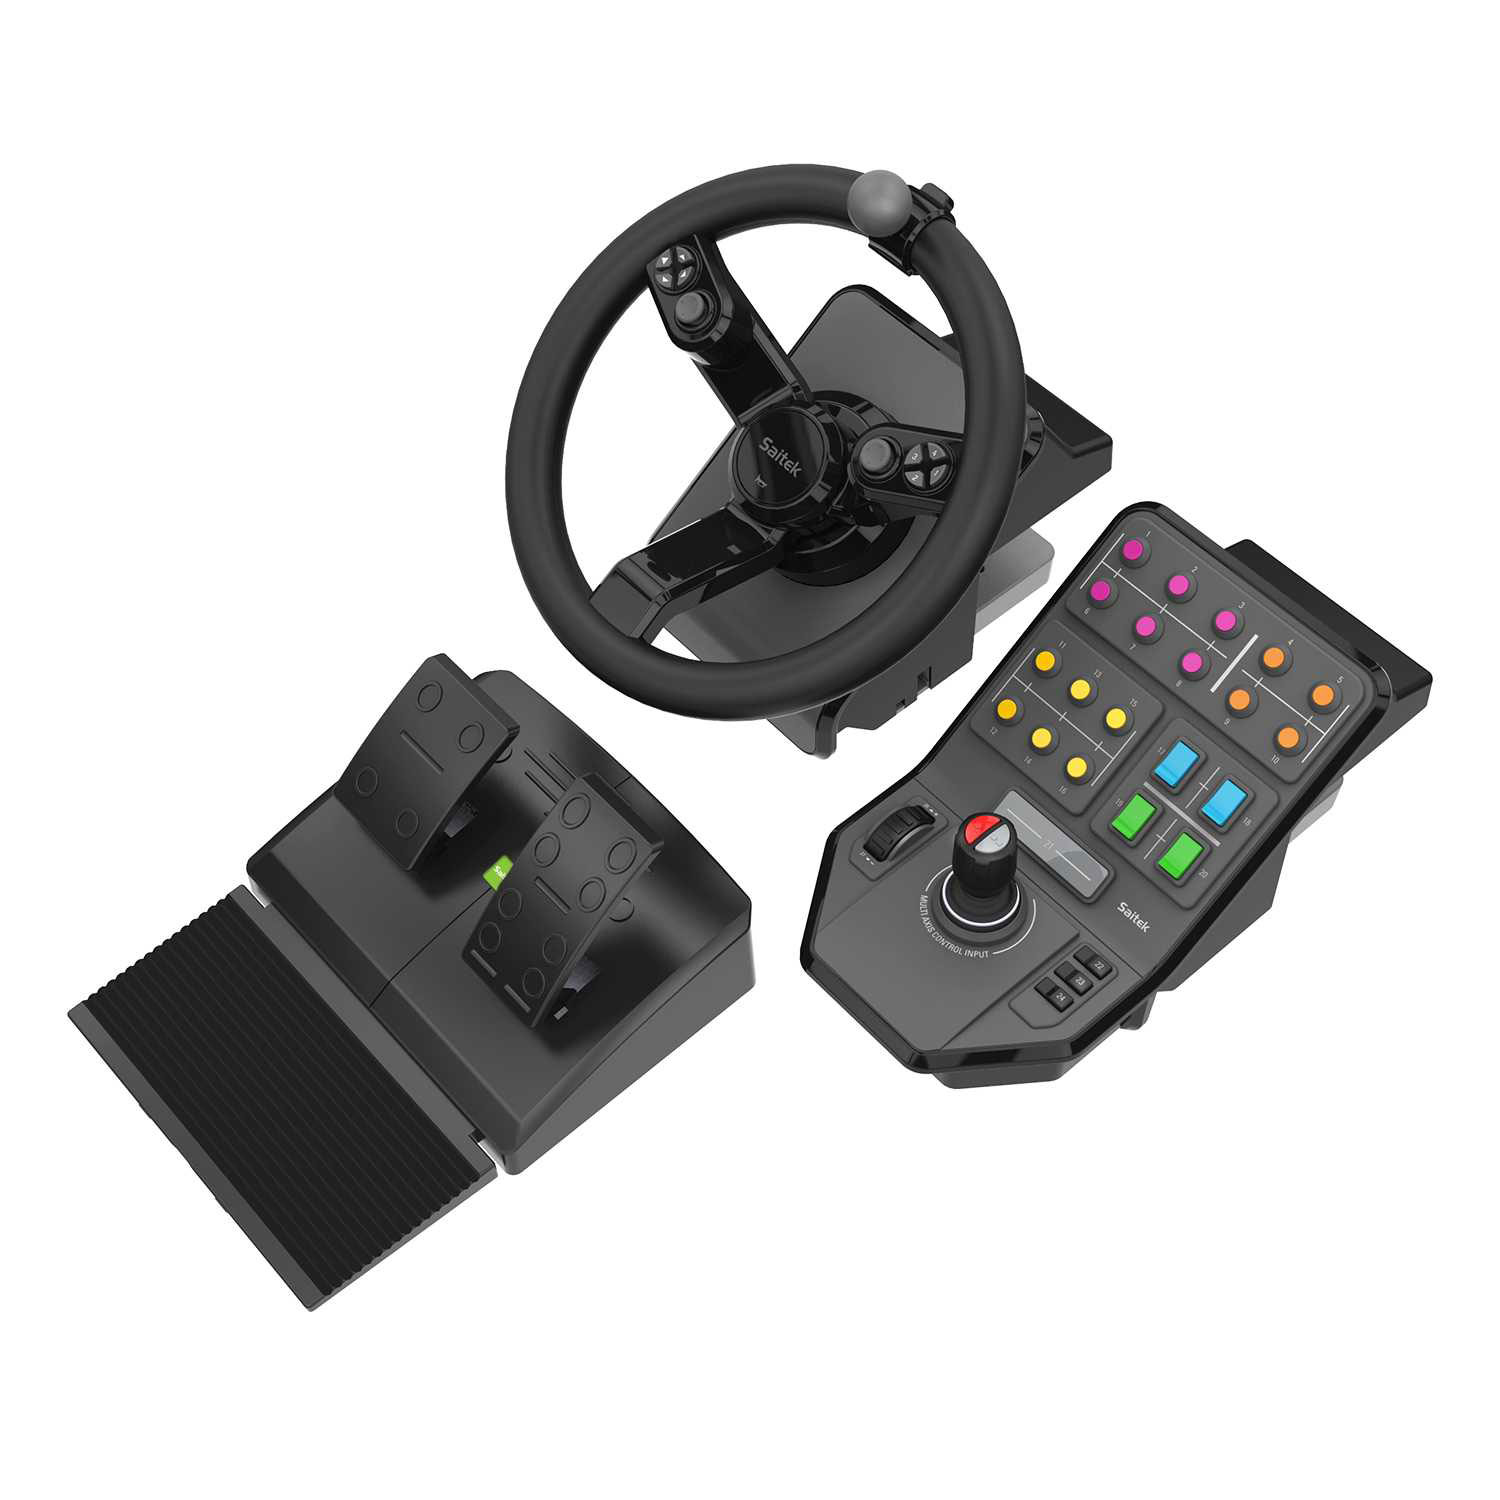 logitech g saitek farming simulator controller volant pc logitech sur. Black Bedroom Furniture Sets. Home Design Ideas